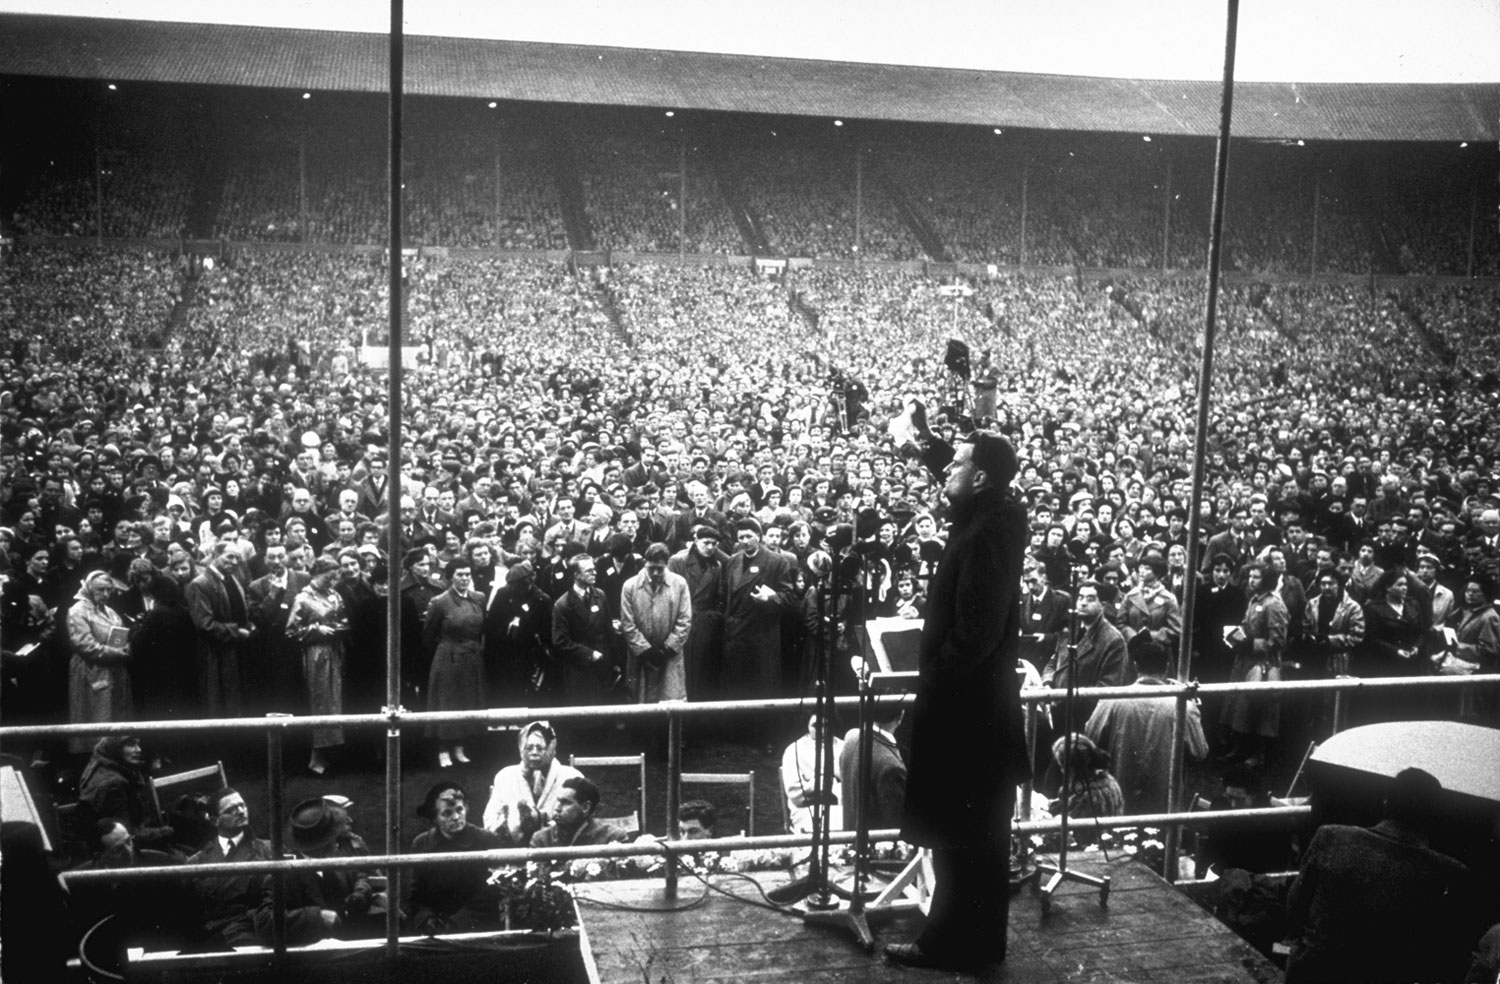 Graham waves a handkerchief while standing at a podium during a service in front of a crowd at Wembley Stadium.